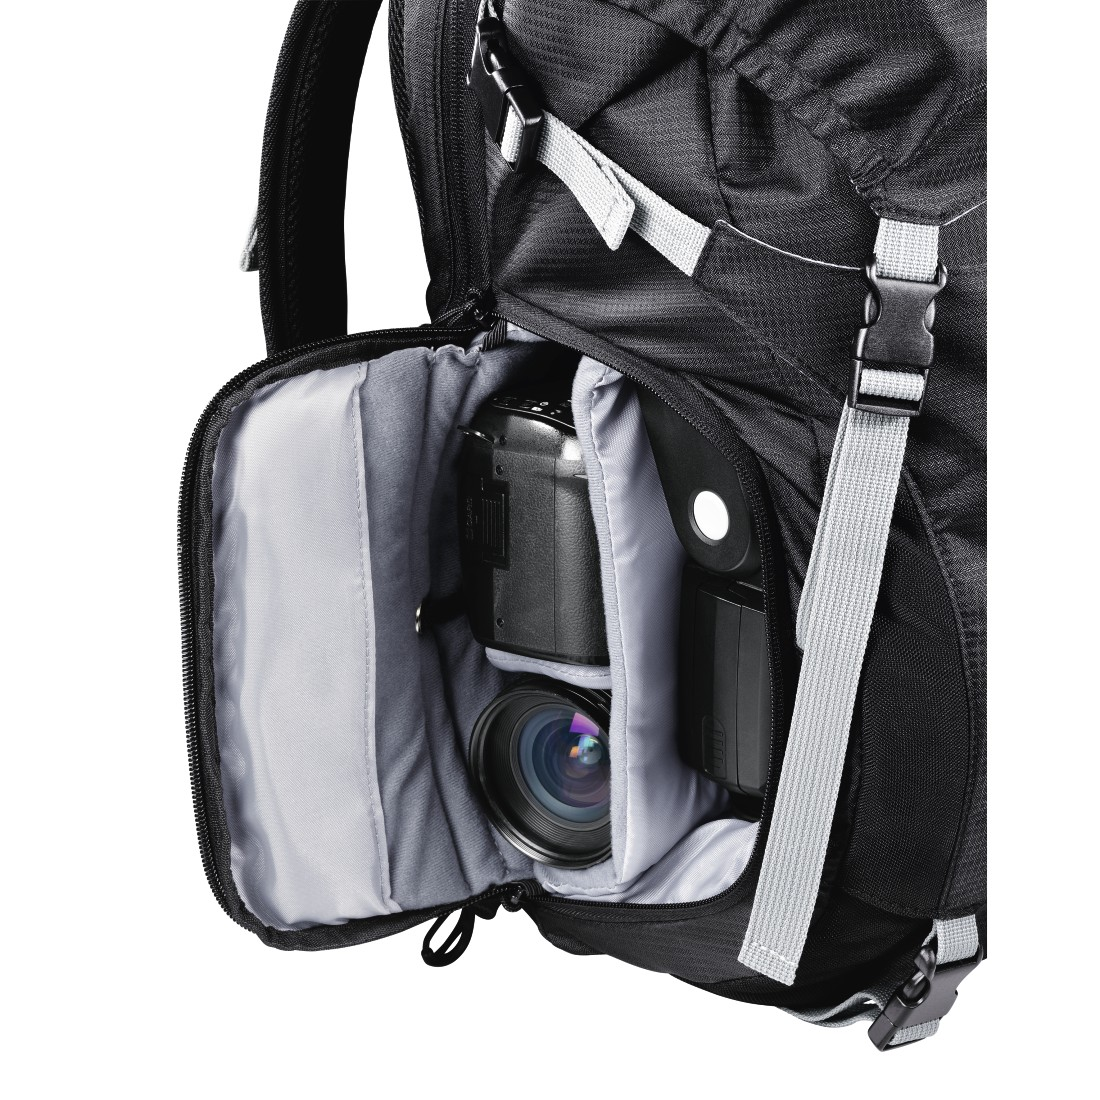 dex8 High-Res Detail 8 - Hama, Trekkingtour Camera Backpack, 140, black